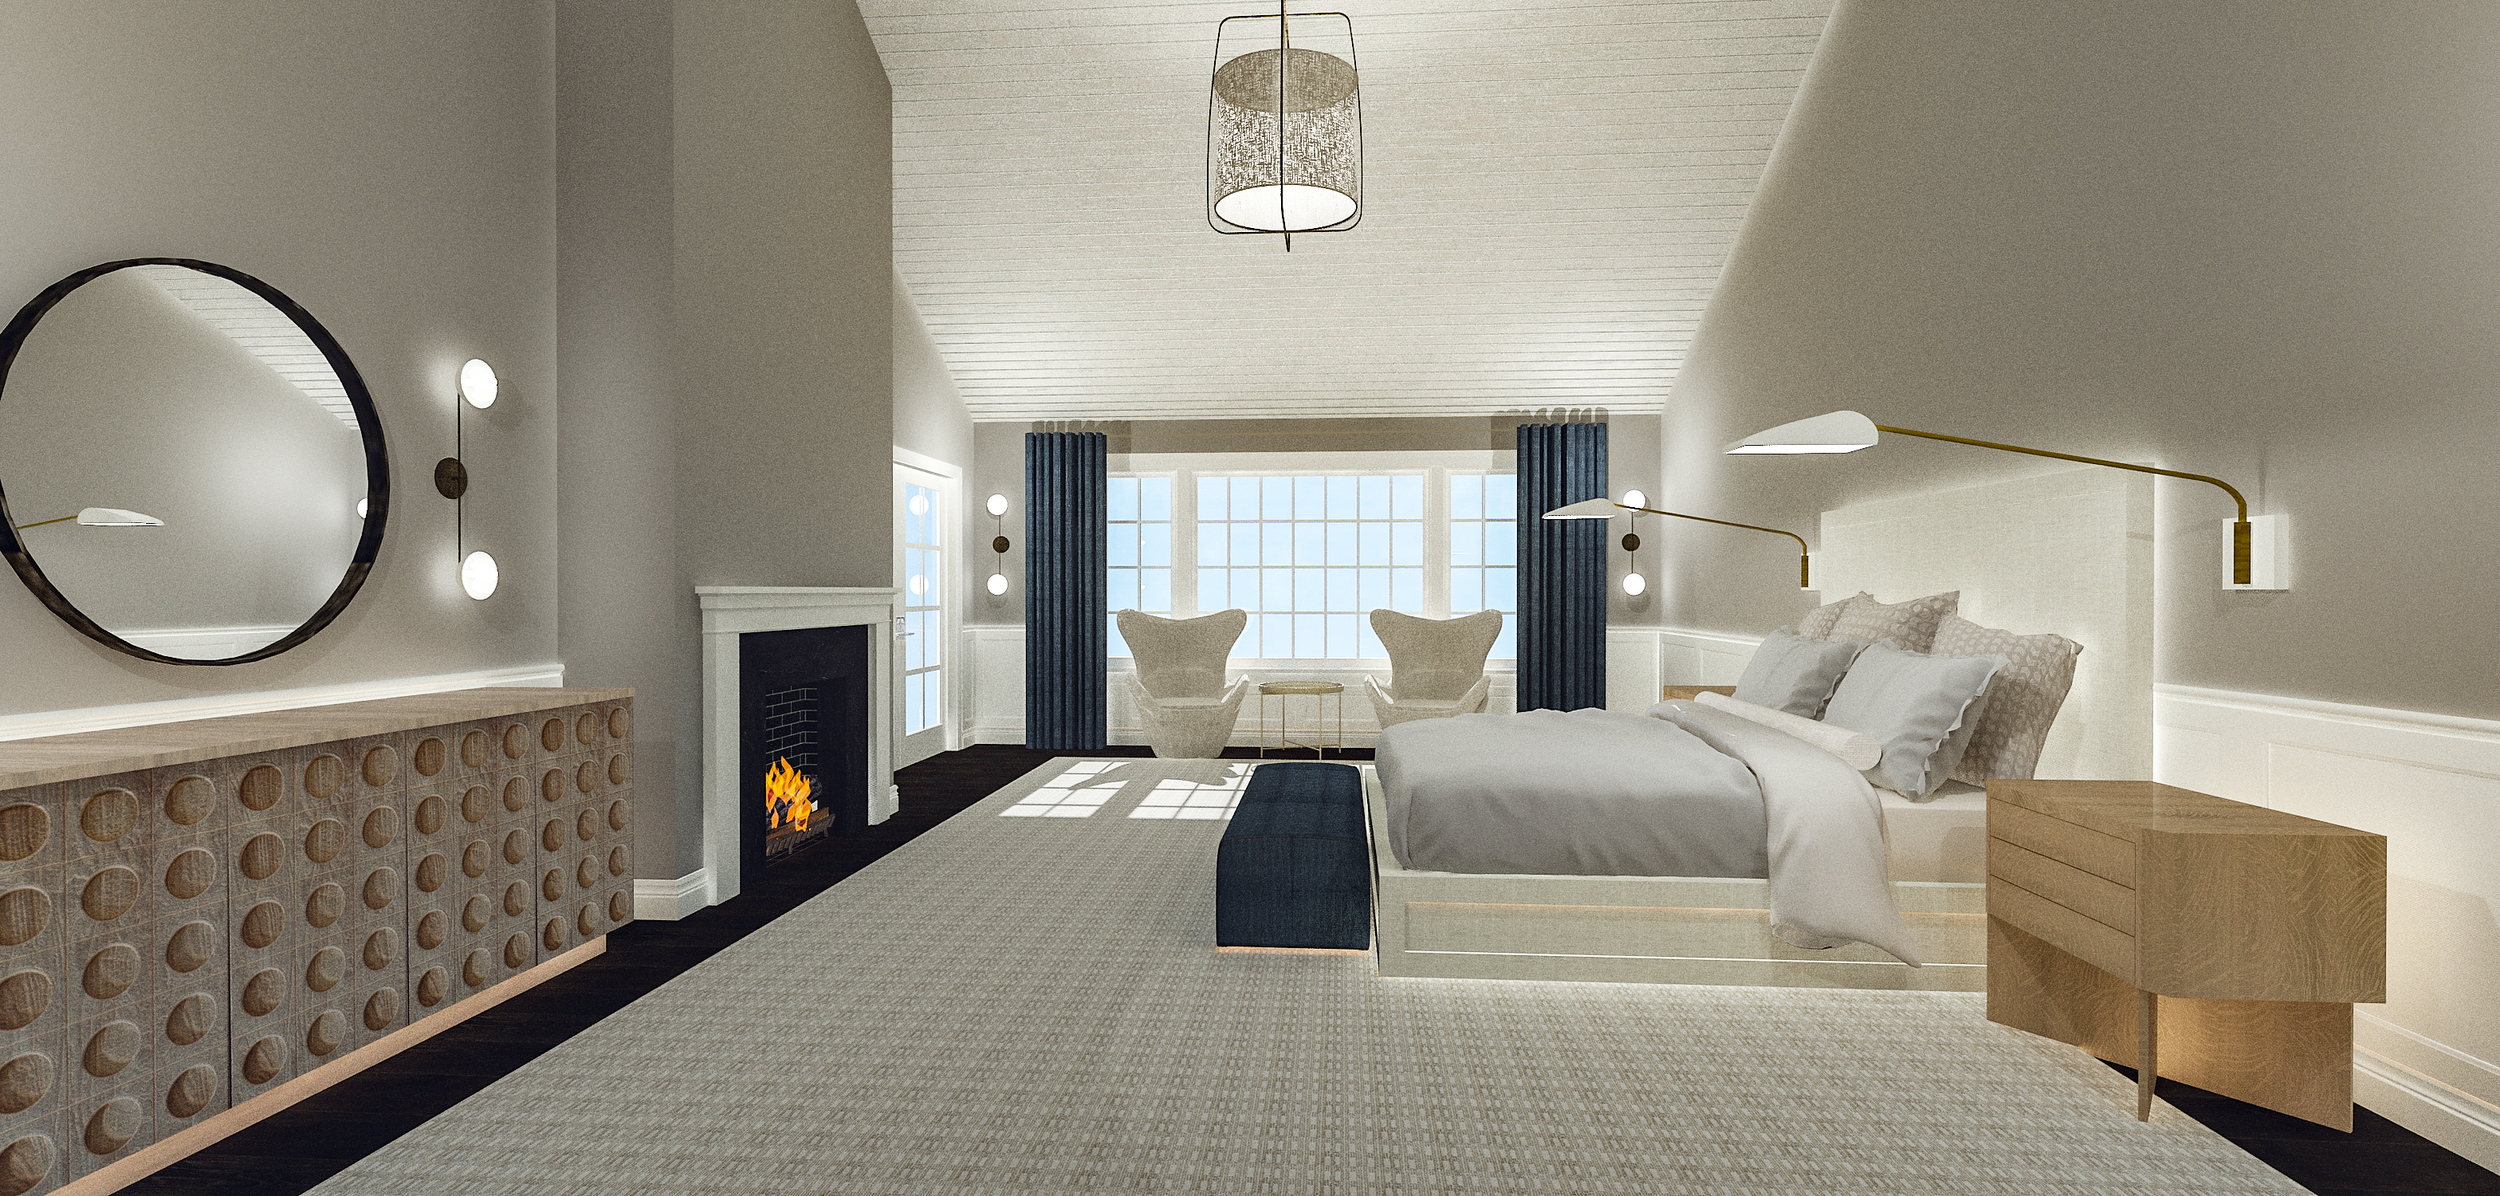 FINAL RENDERING | Designed by: Anne Carr Designs | Rendered by: Kelly Fridline Design using Chief Architect X11